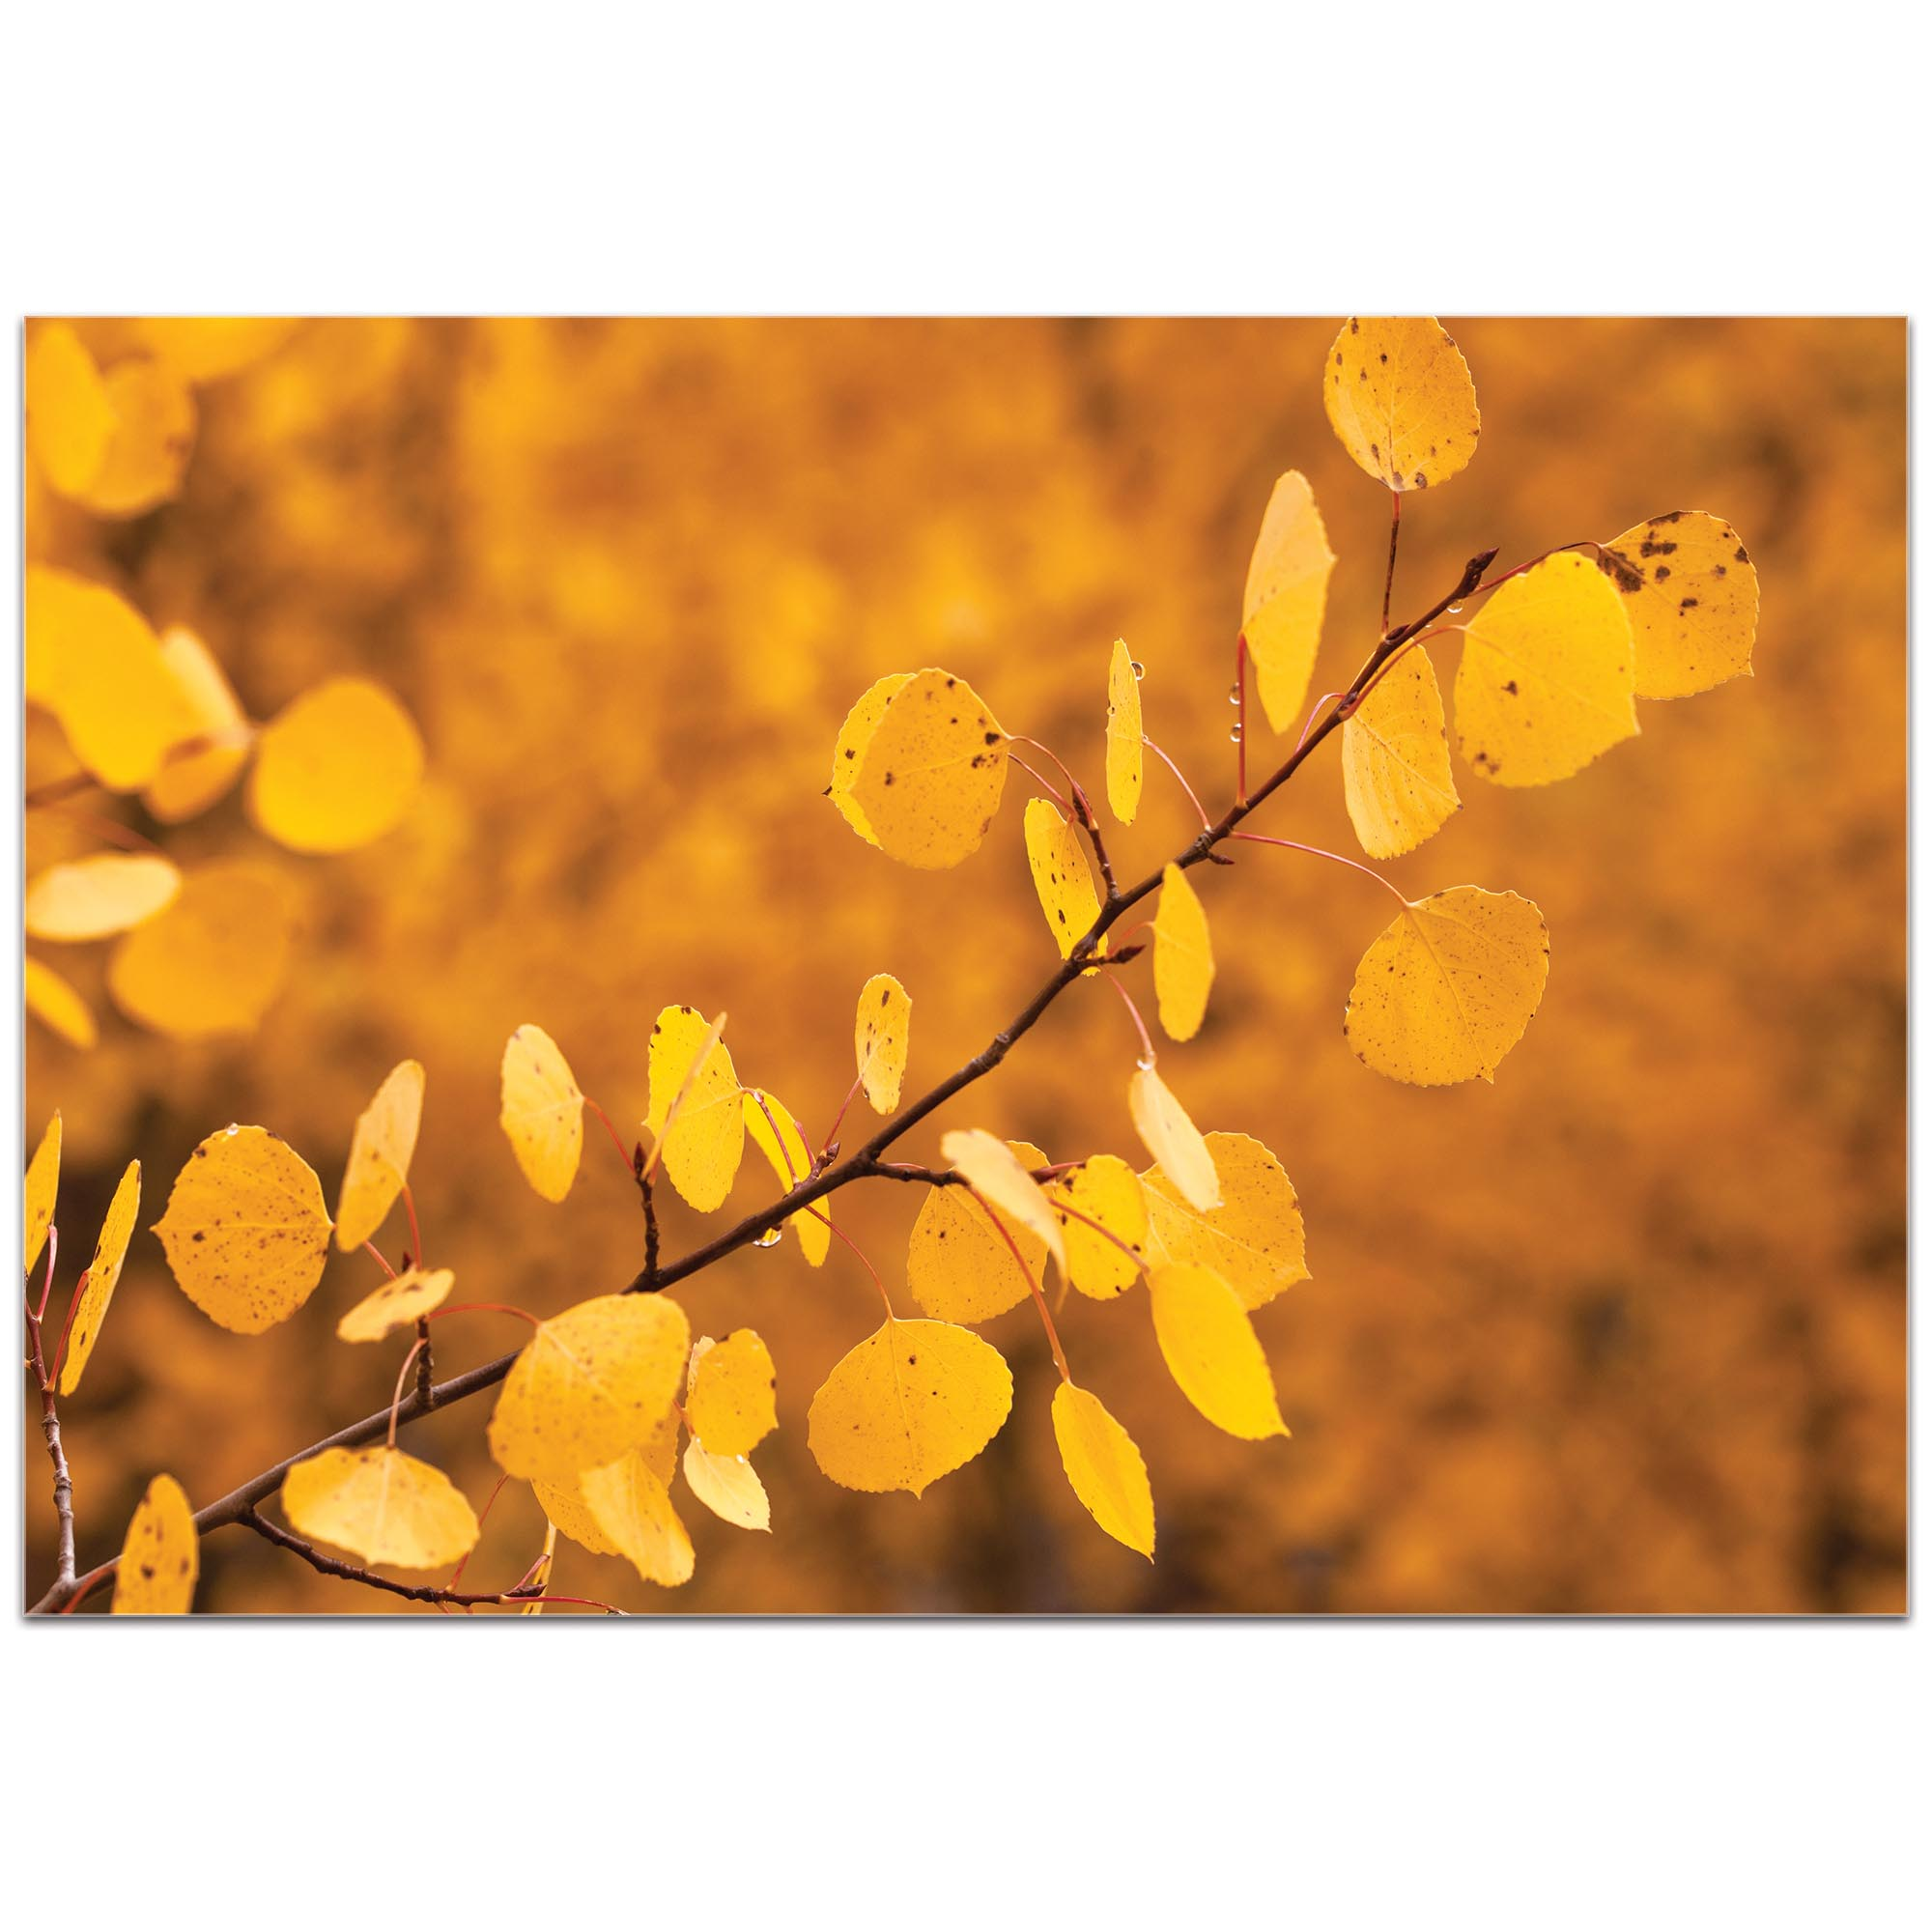 Nature Photography 'Yellow Leaves' - Autumn Leaves Art on Metal or Plexiglass - Image 2